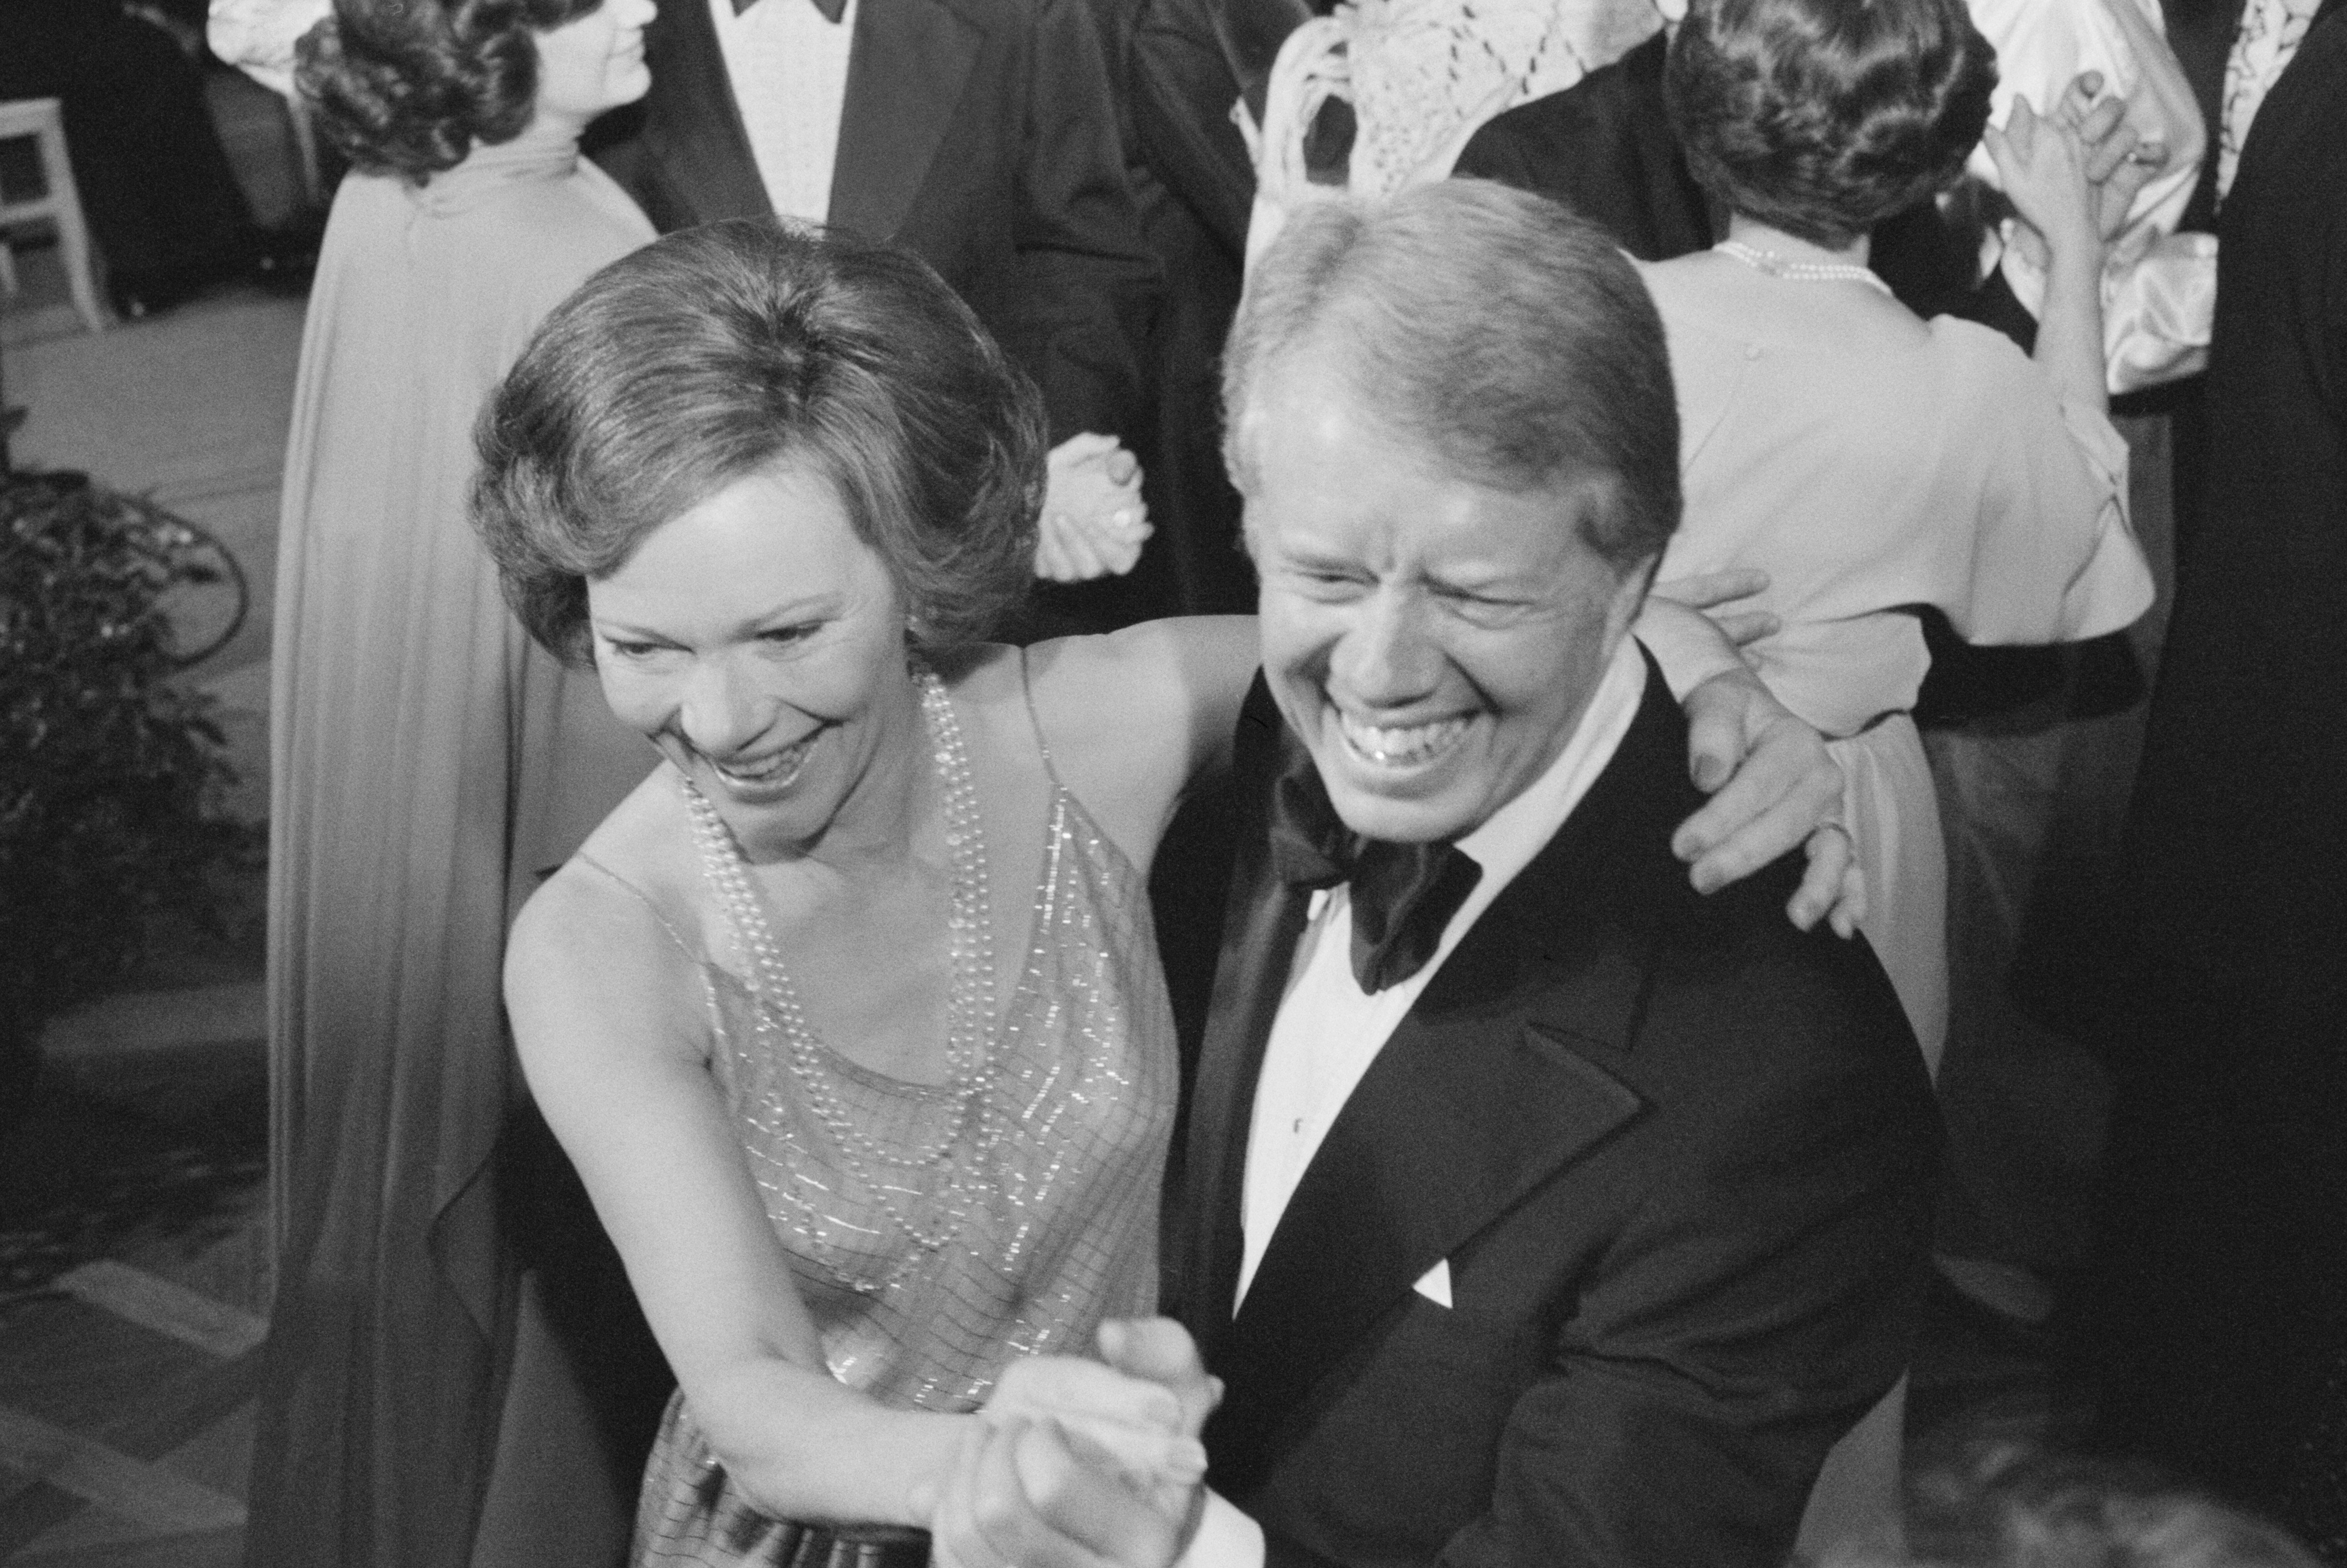 U.S. President Jimmy Carter and First Lady Rosalynn Carter dance at a White House Congressional Ball, Washington, D.C., USA, photograph by Marion S. Trikosko, December 13, 1978   Source: Getty Images